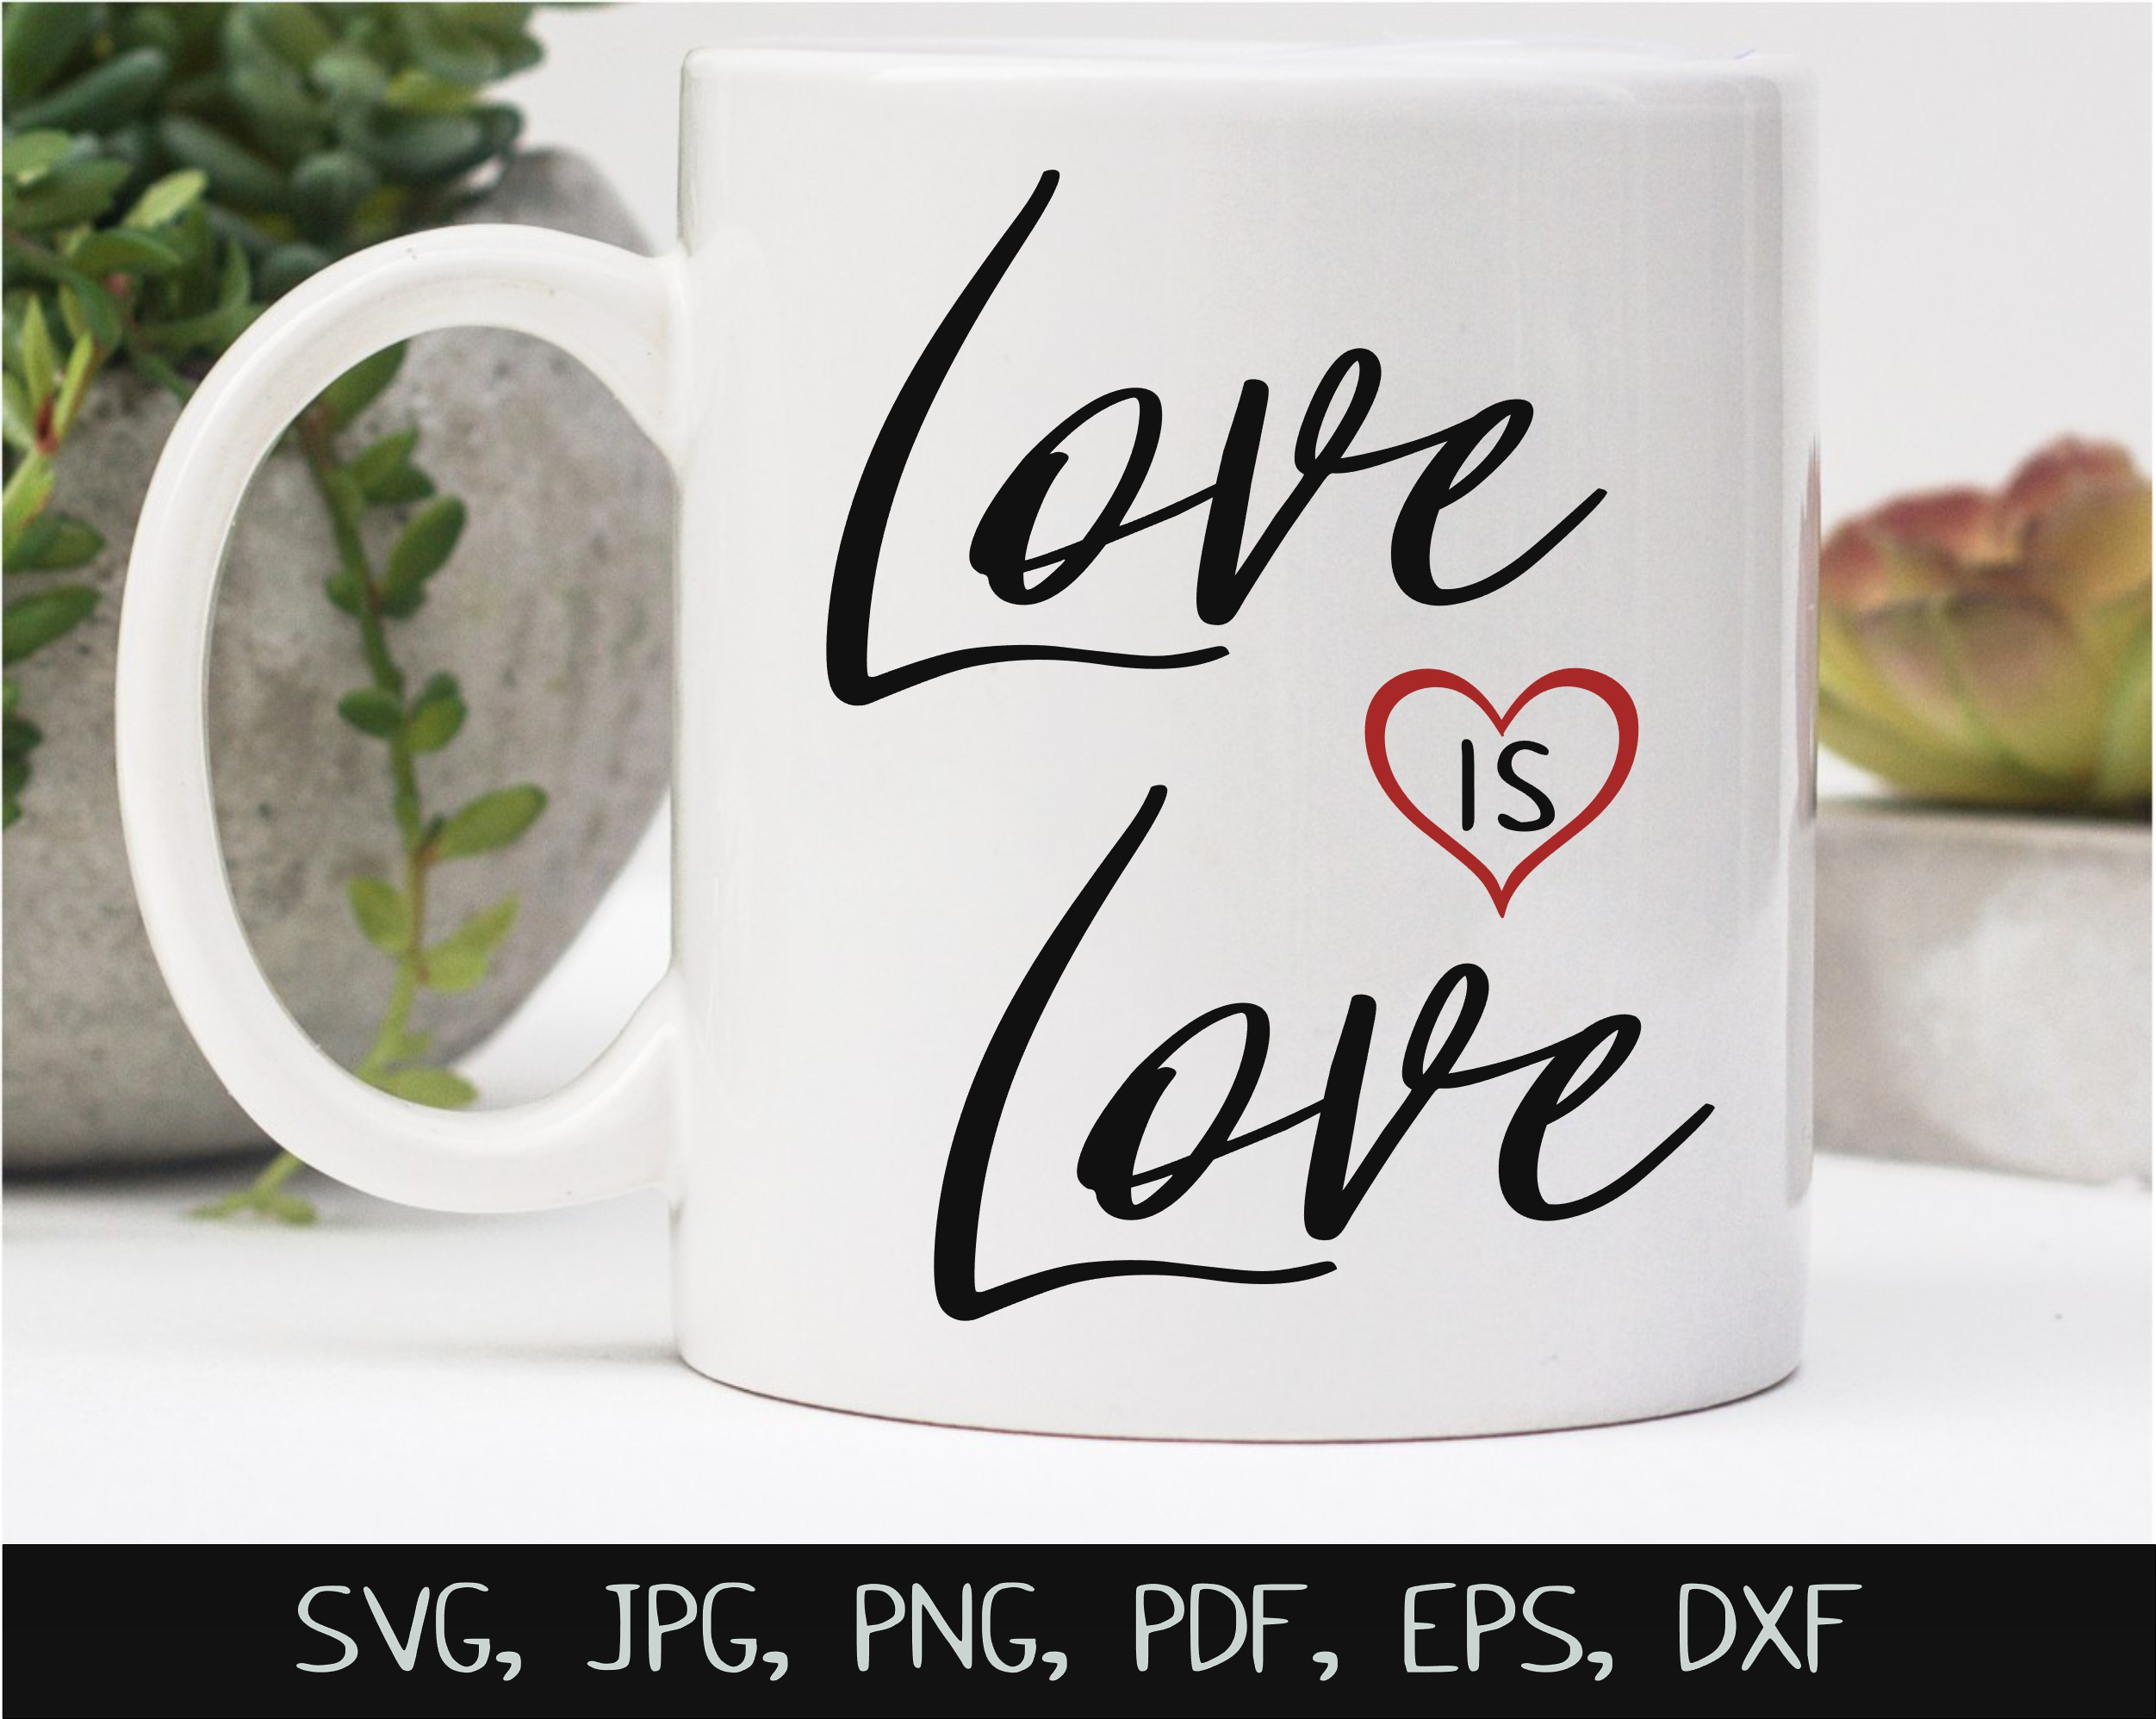 Love Is Love SVG, Sublimation PNG and Printable Design example image 3